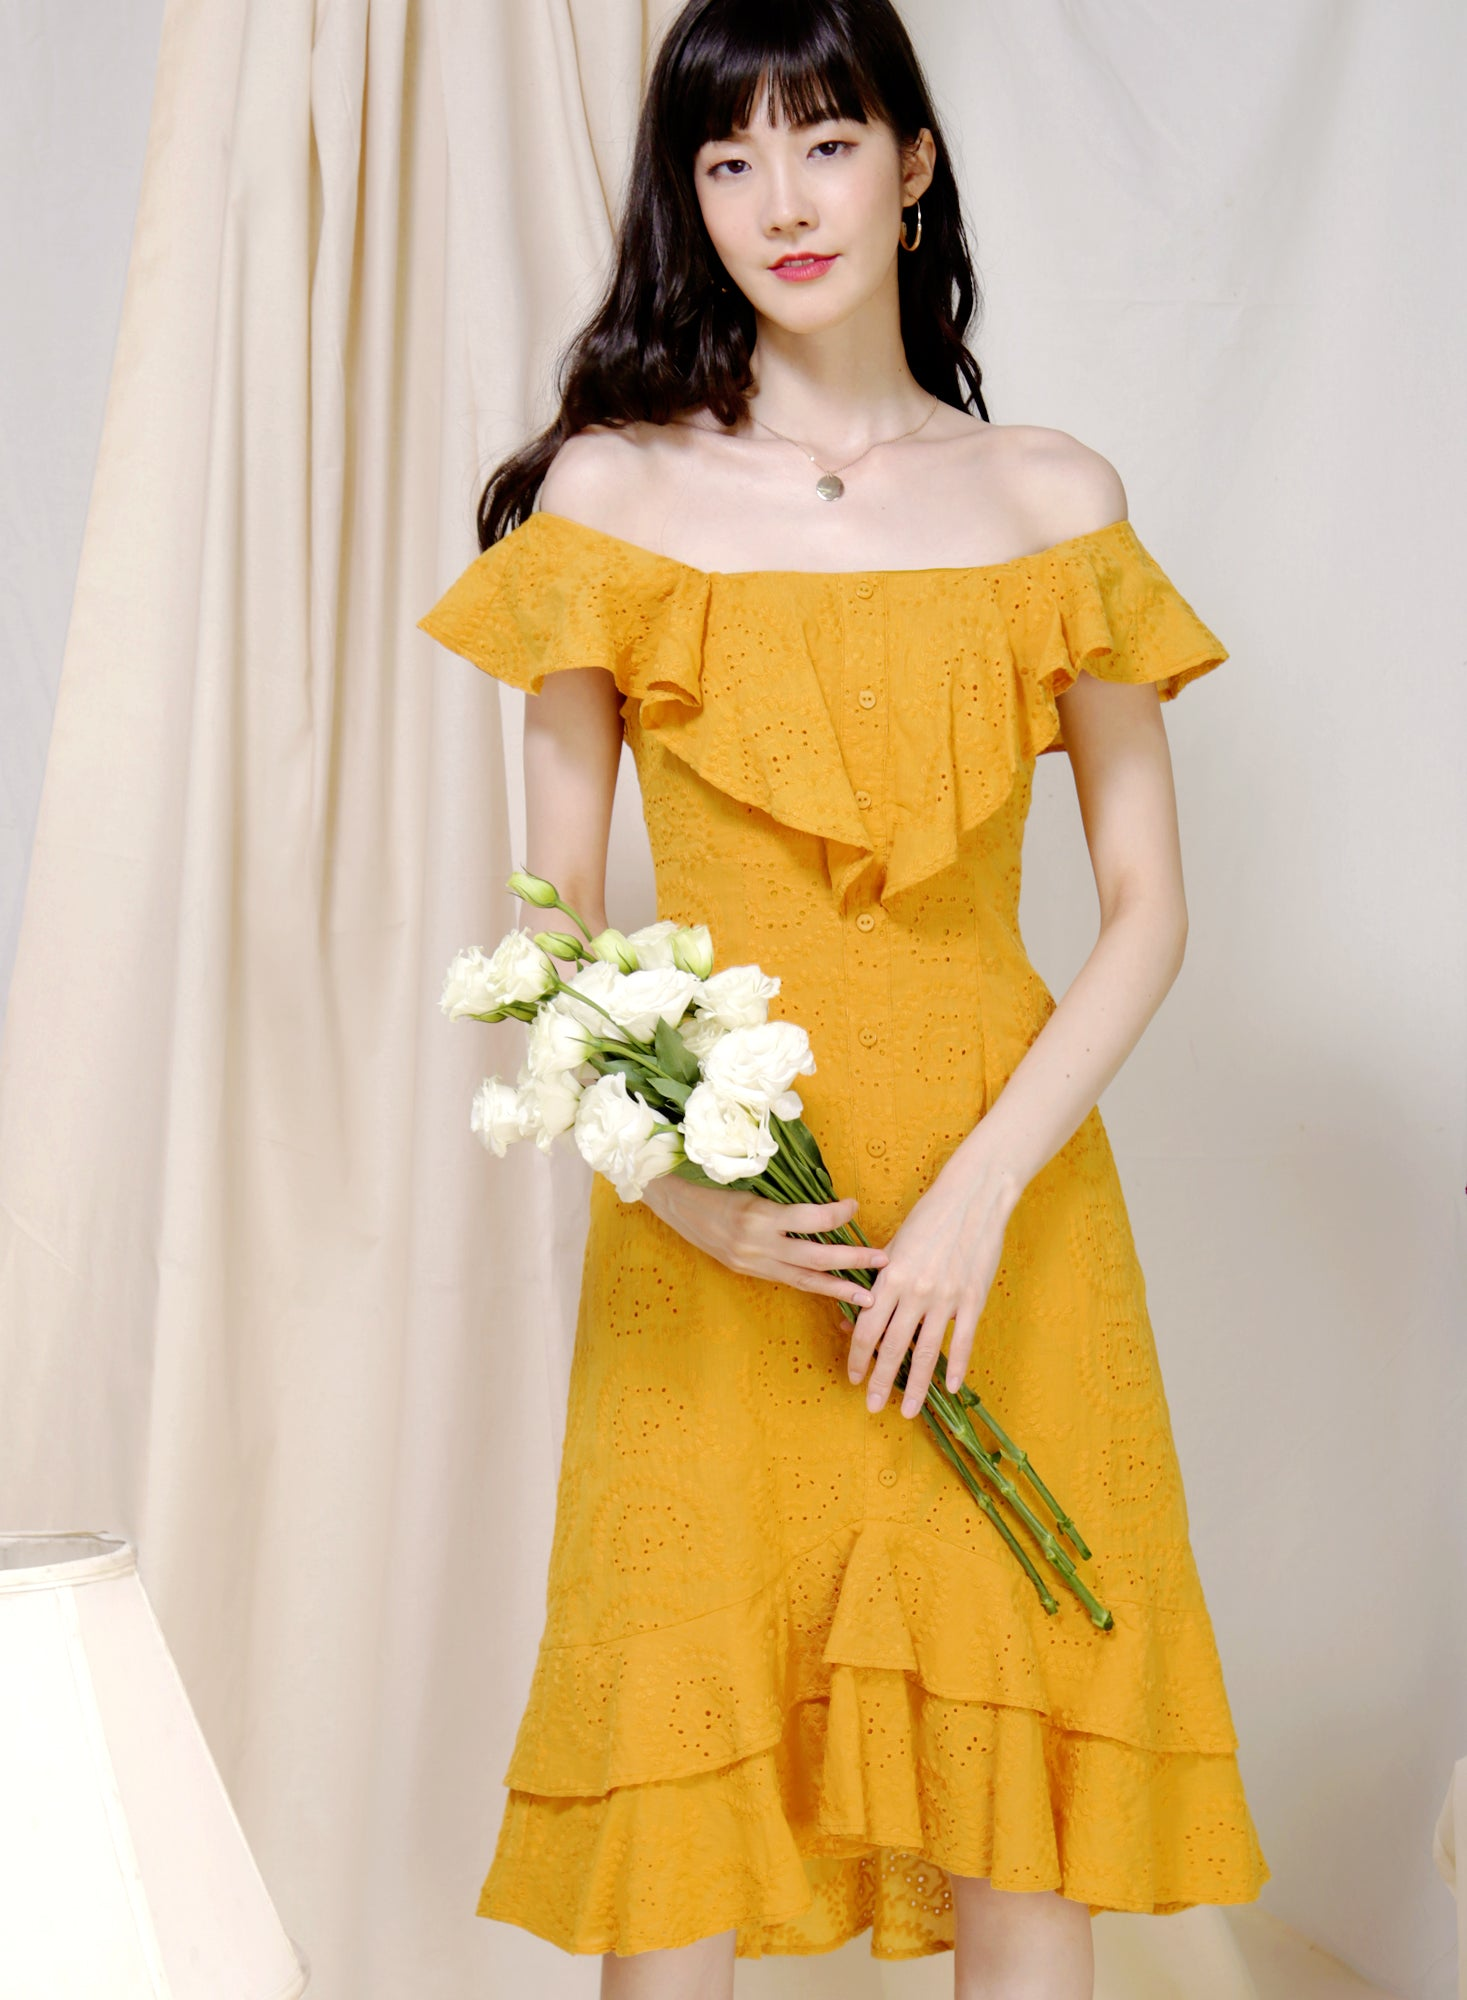 Sojourn Two Way Eyelet Dress (Marigold) at $ 45.00 only sold at And Well Dressed Online Fashion Store Singapore